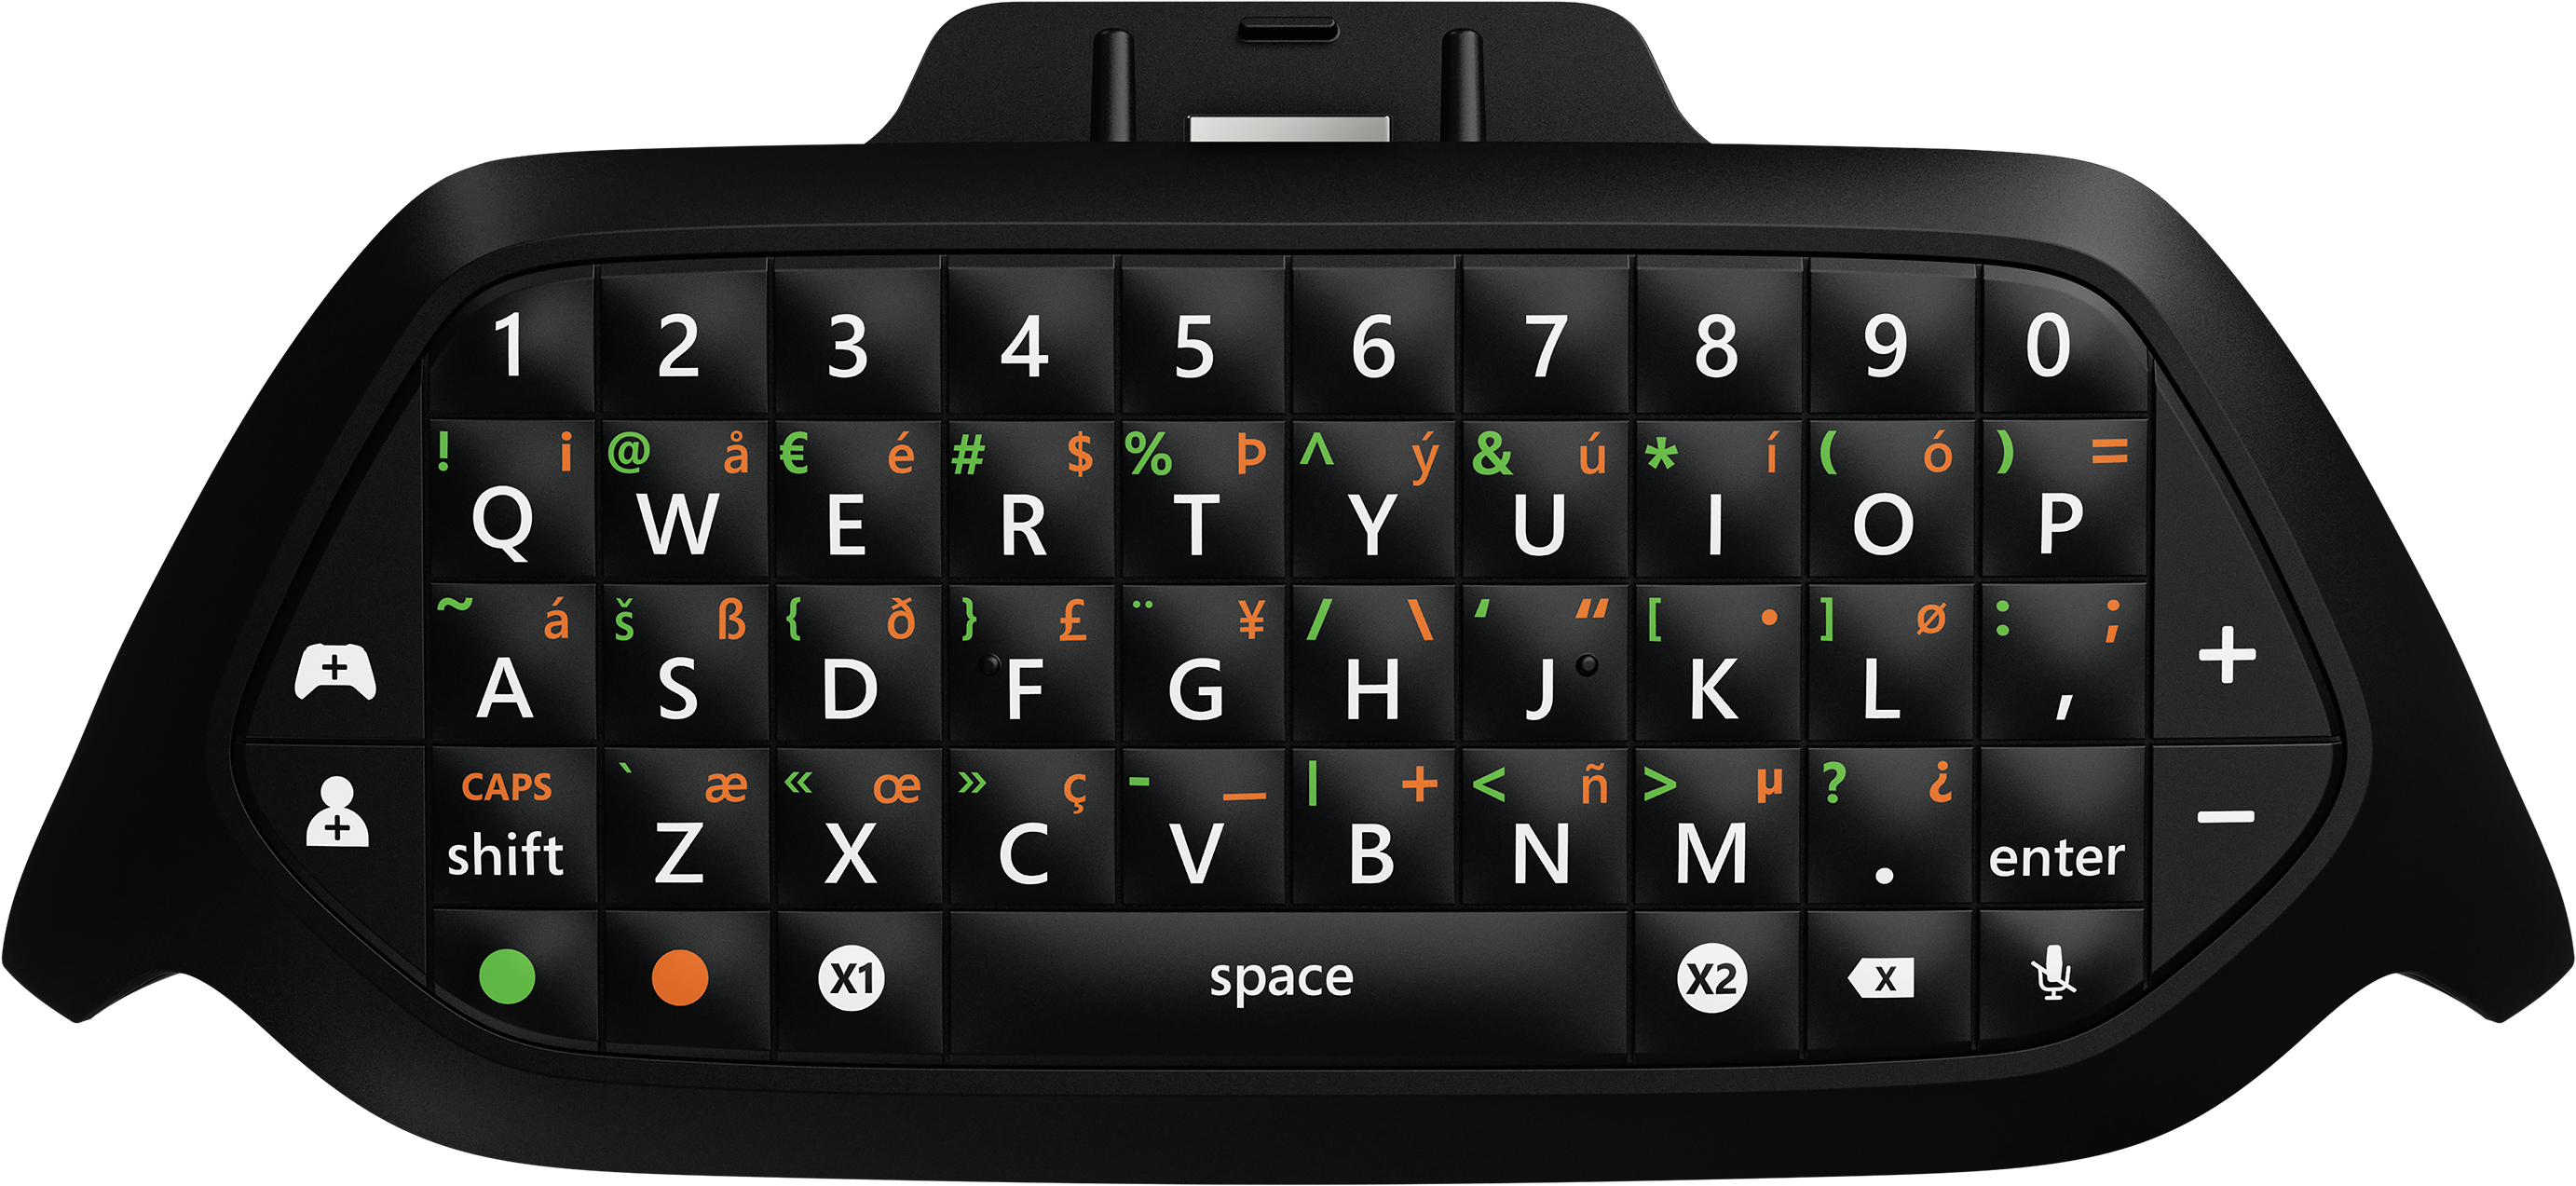 Xbox One Chatpad